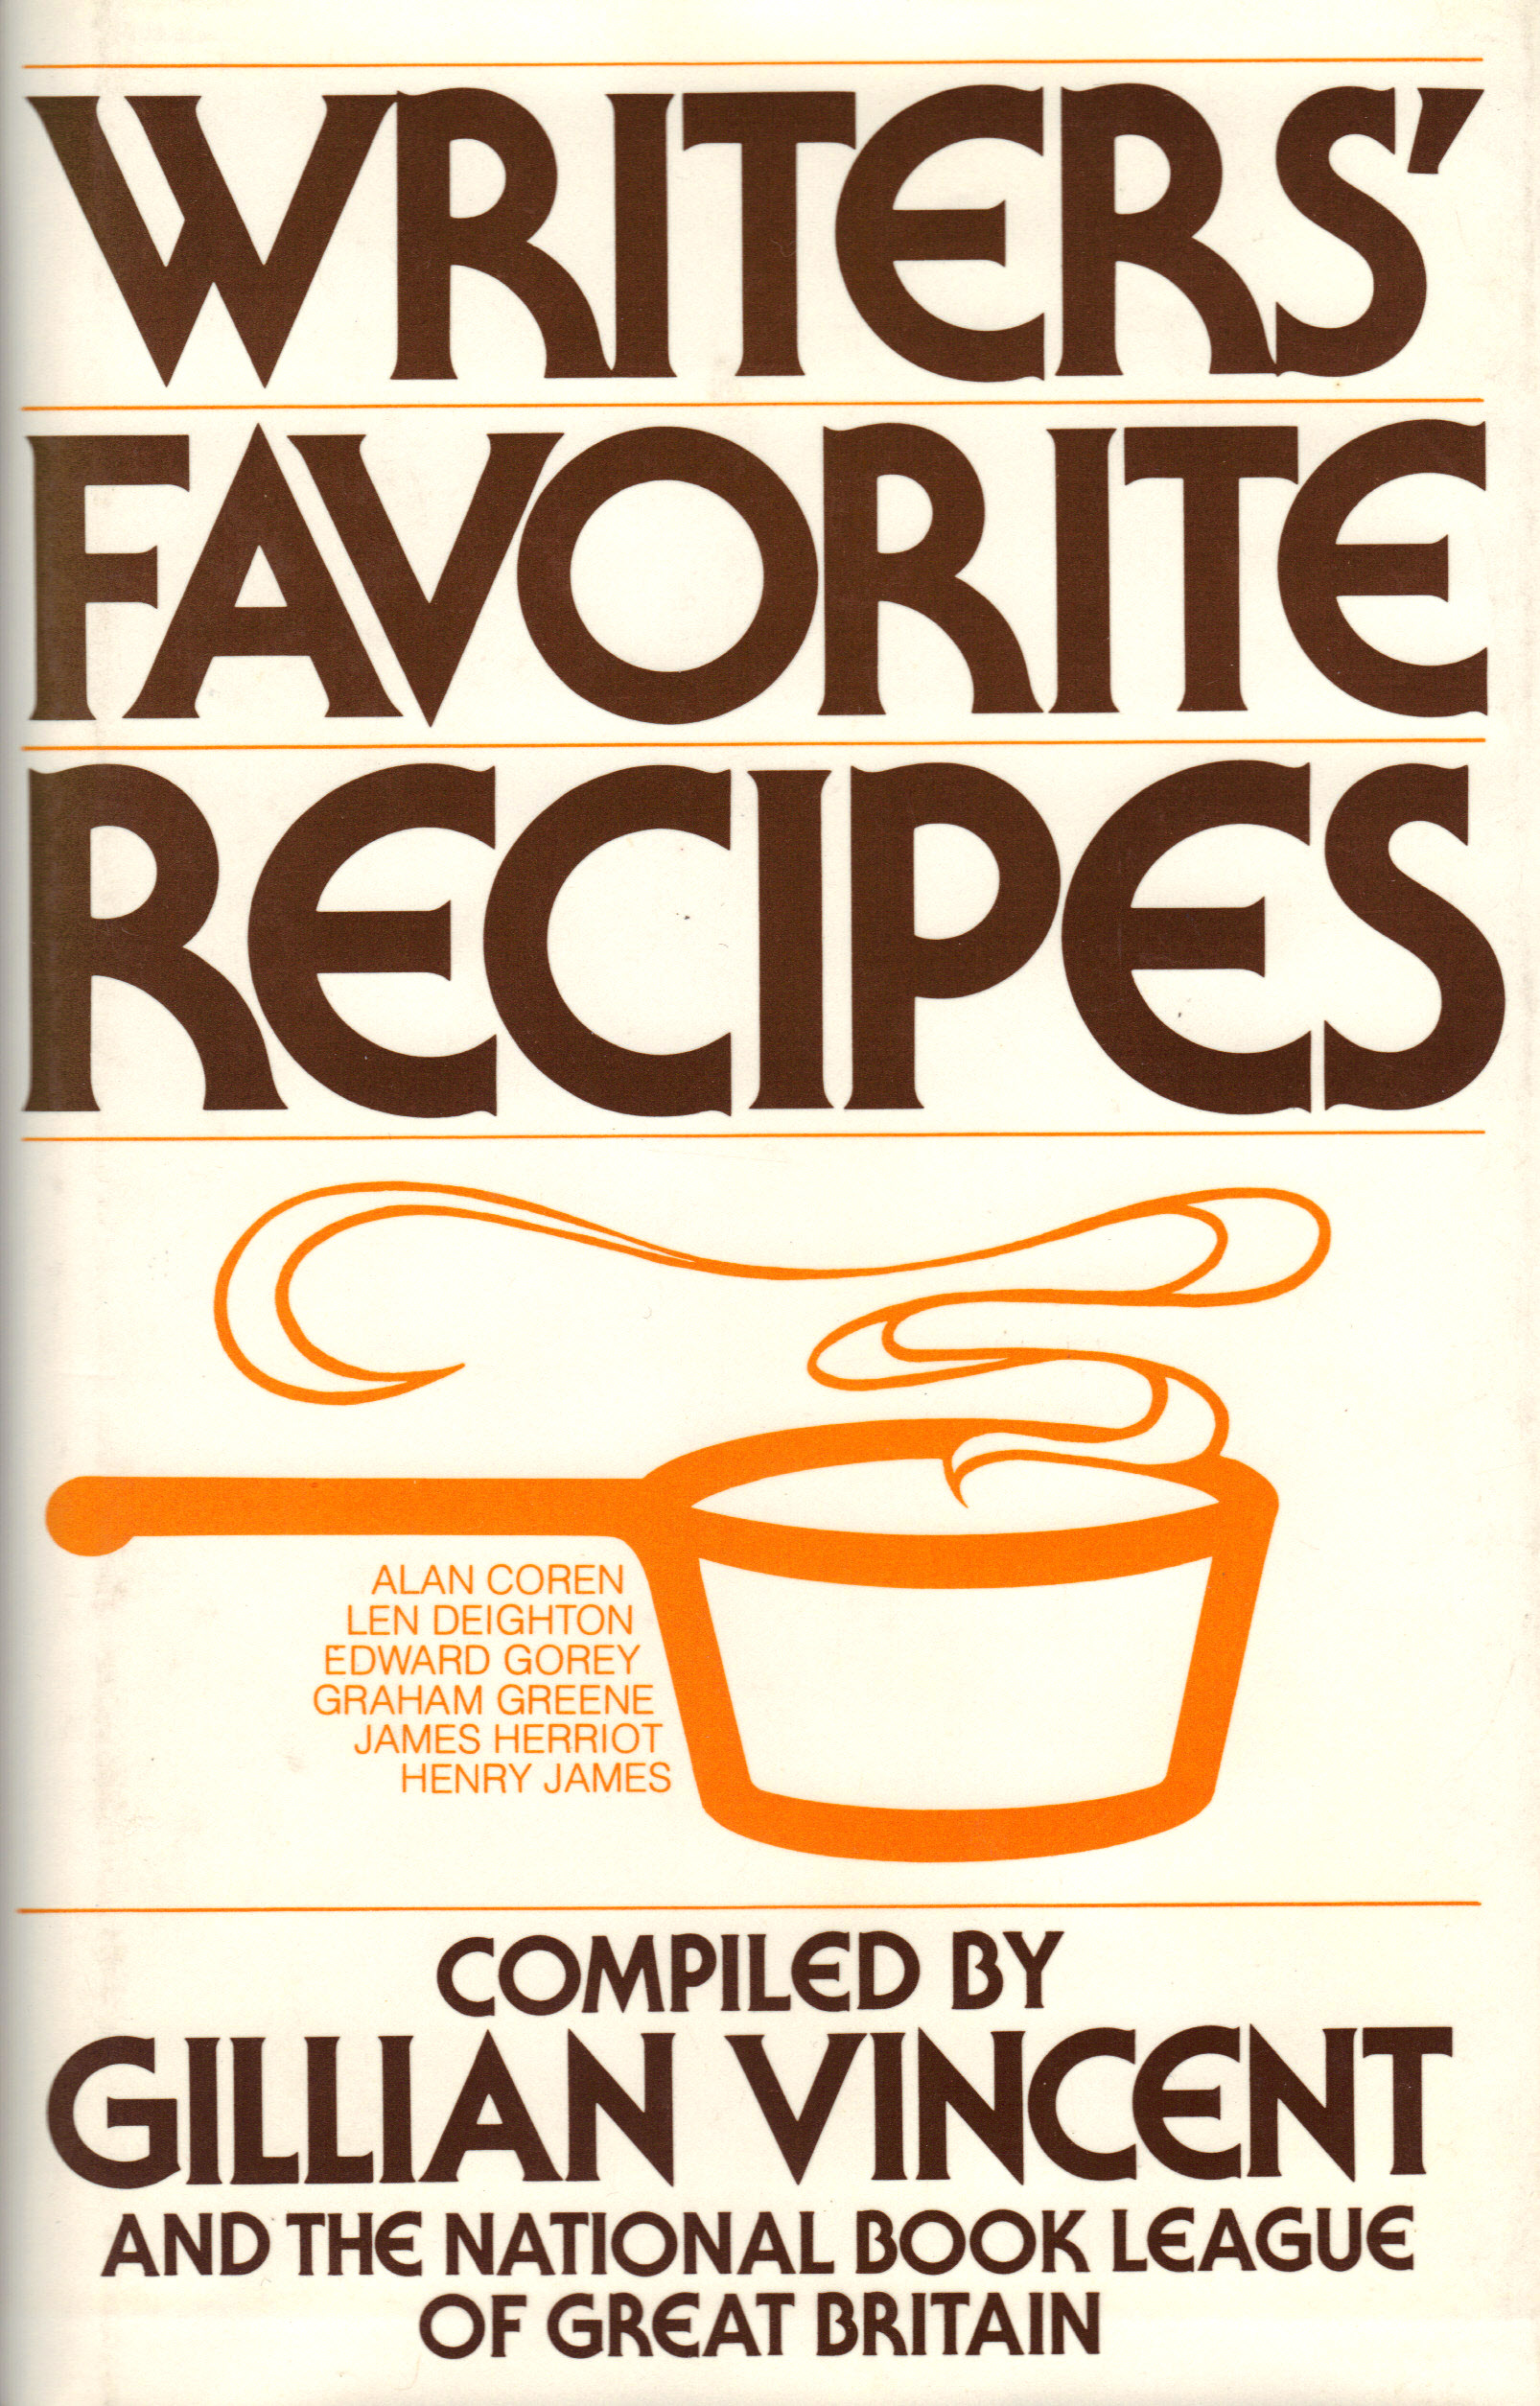 Image for WRITERS FAVORITE RECIPES